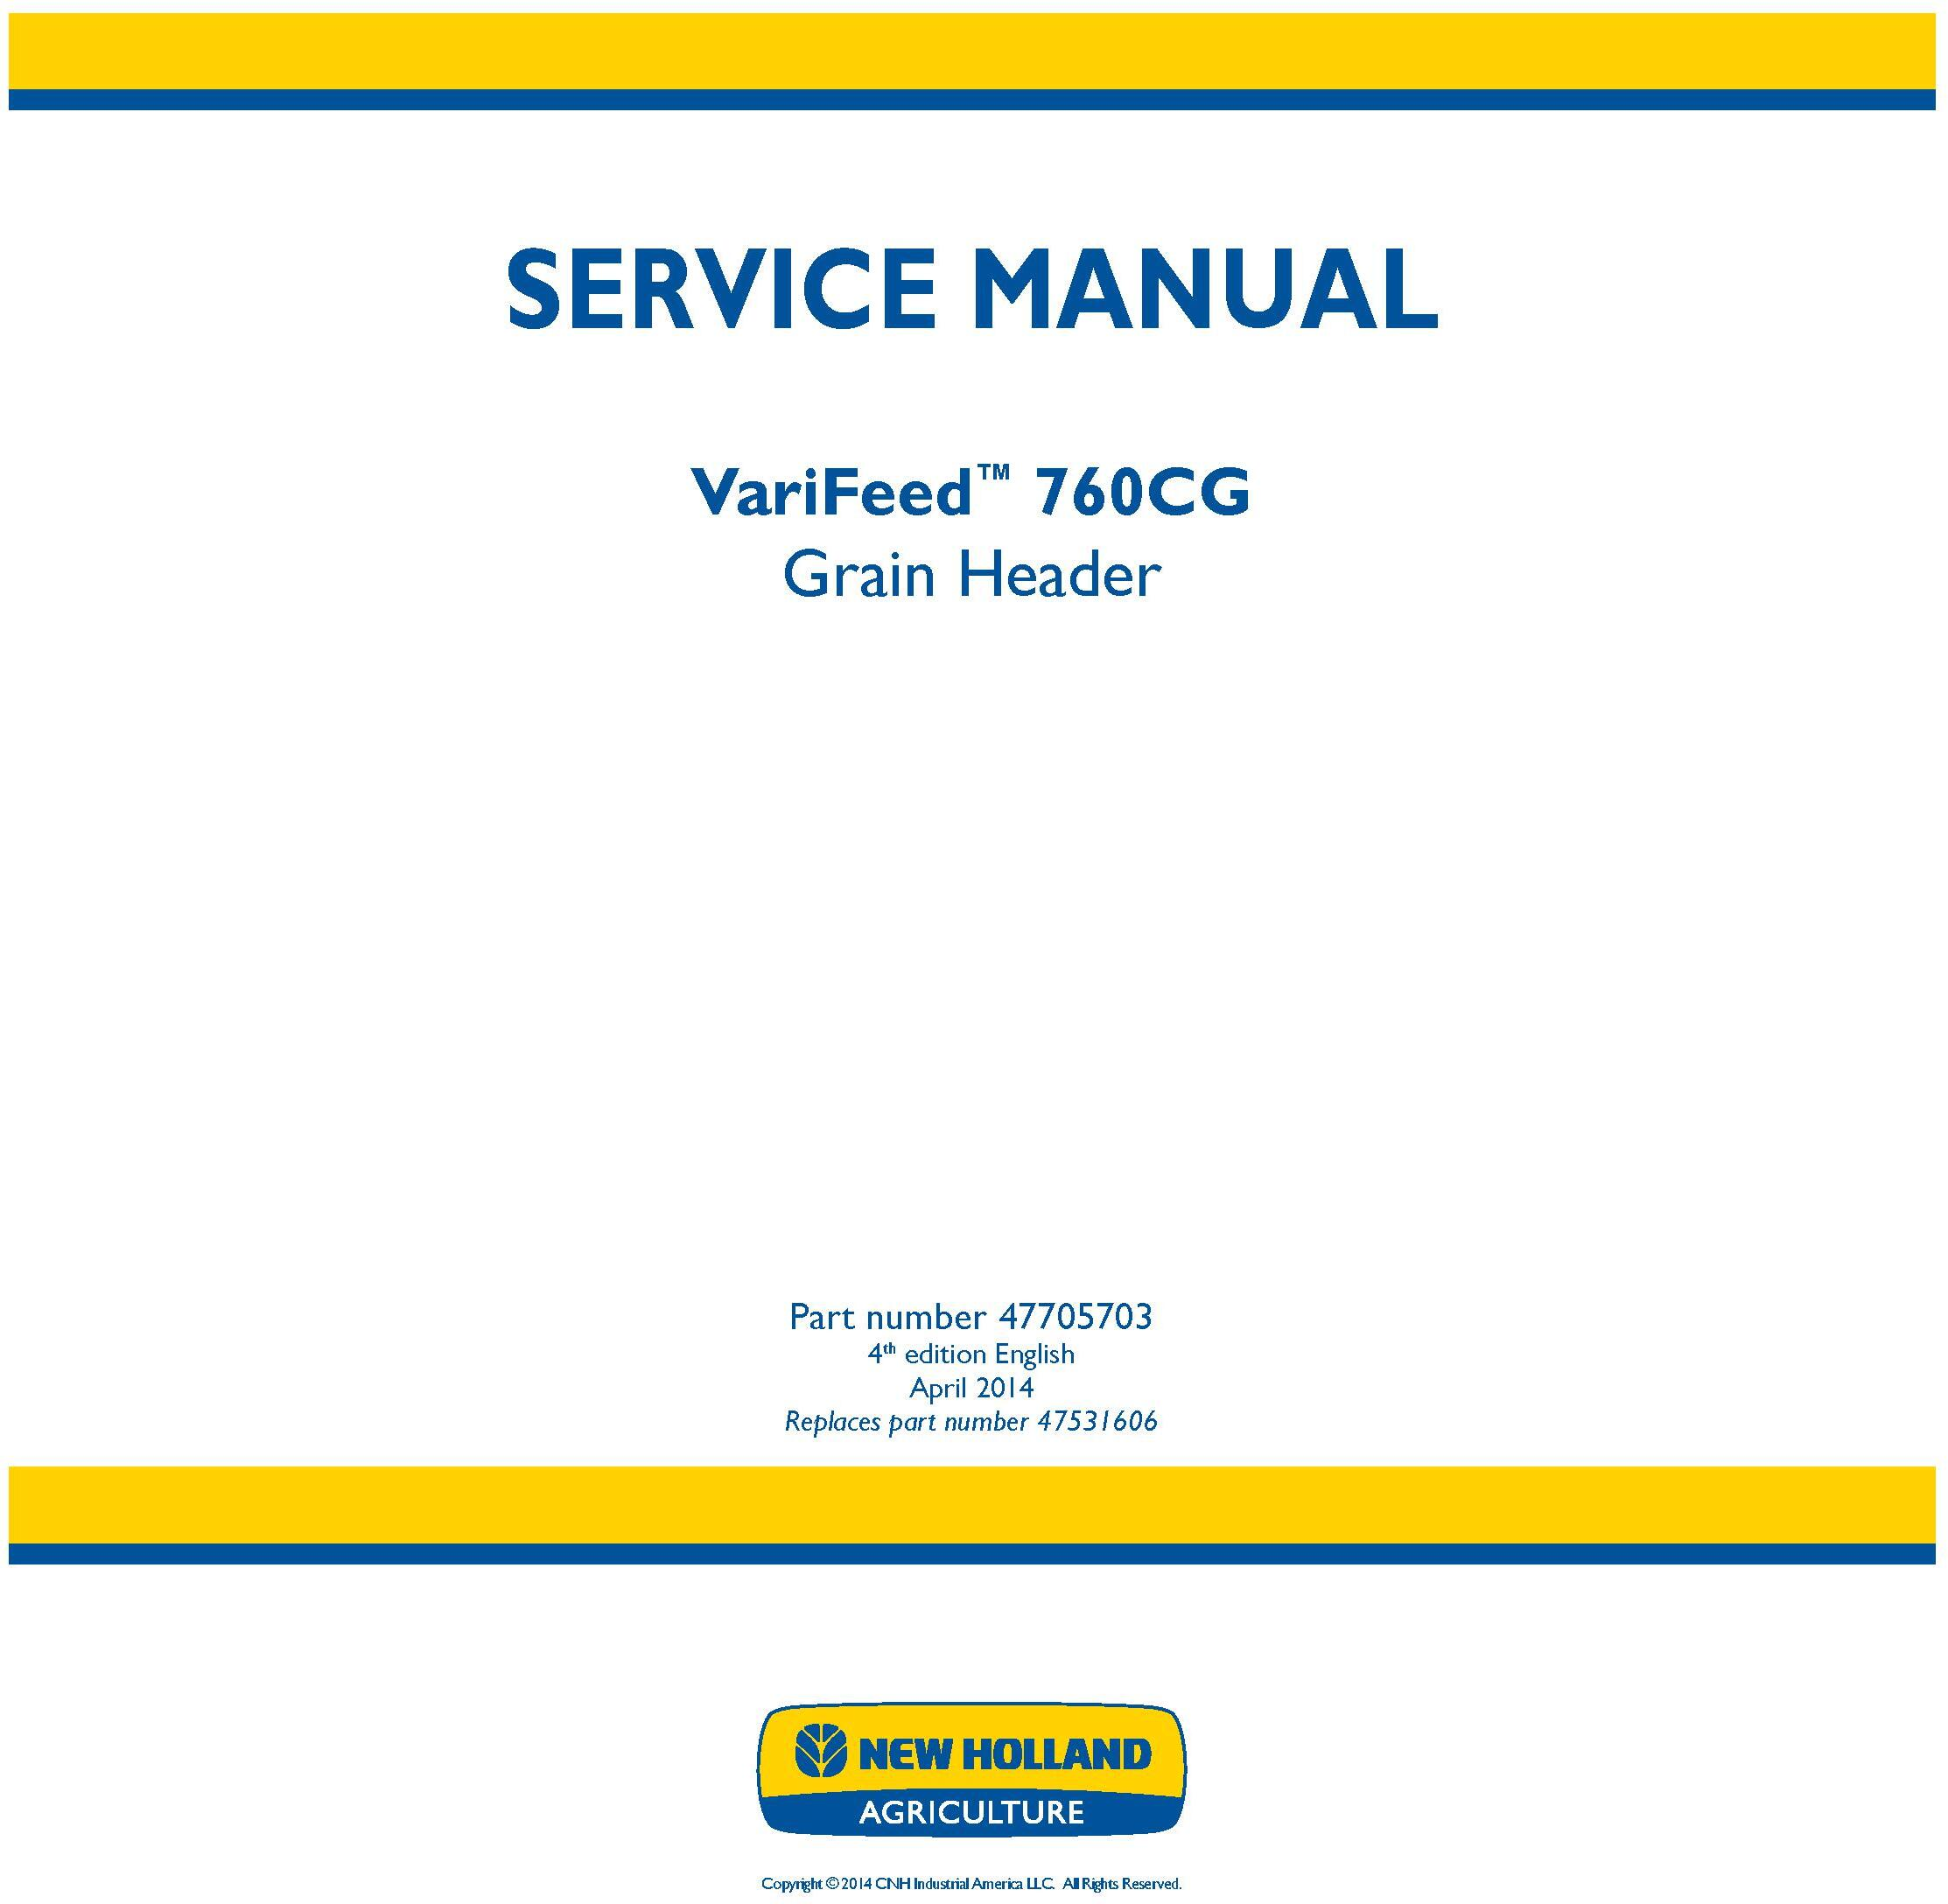 New Holland VariFeed 760CG Grain Header Service Manual - 20037